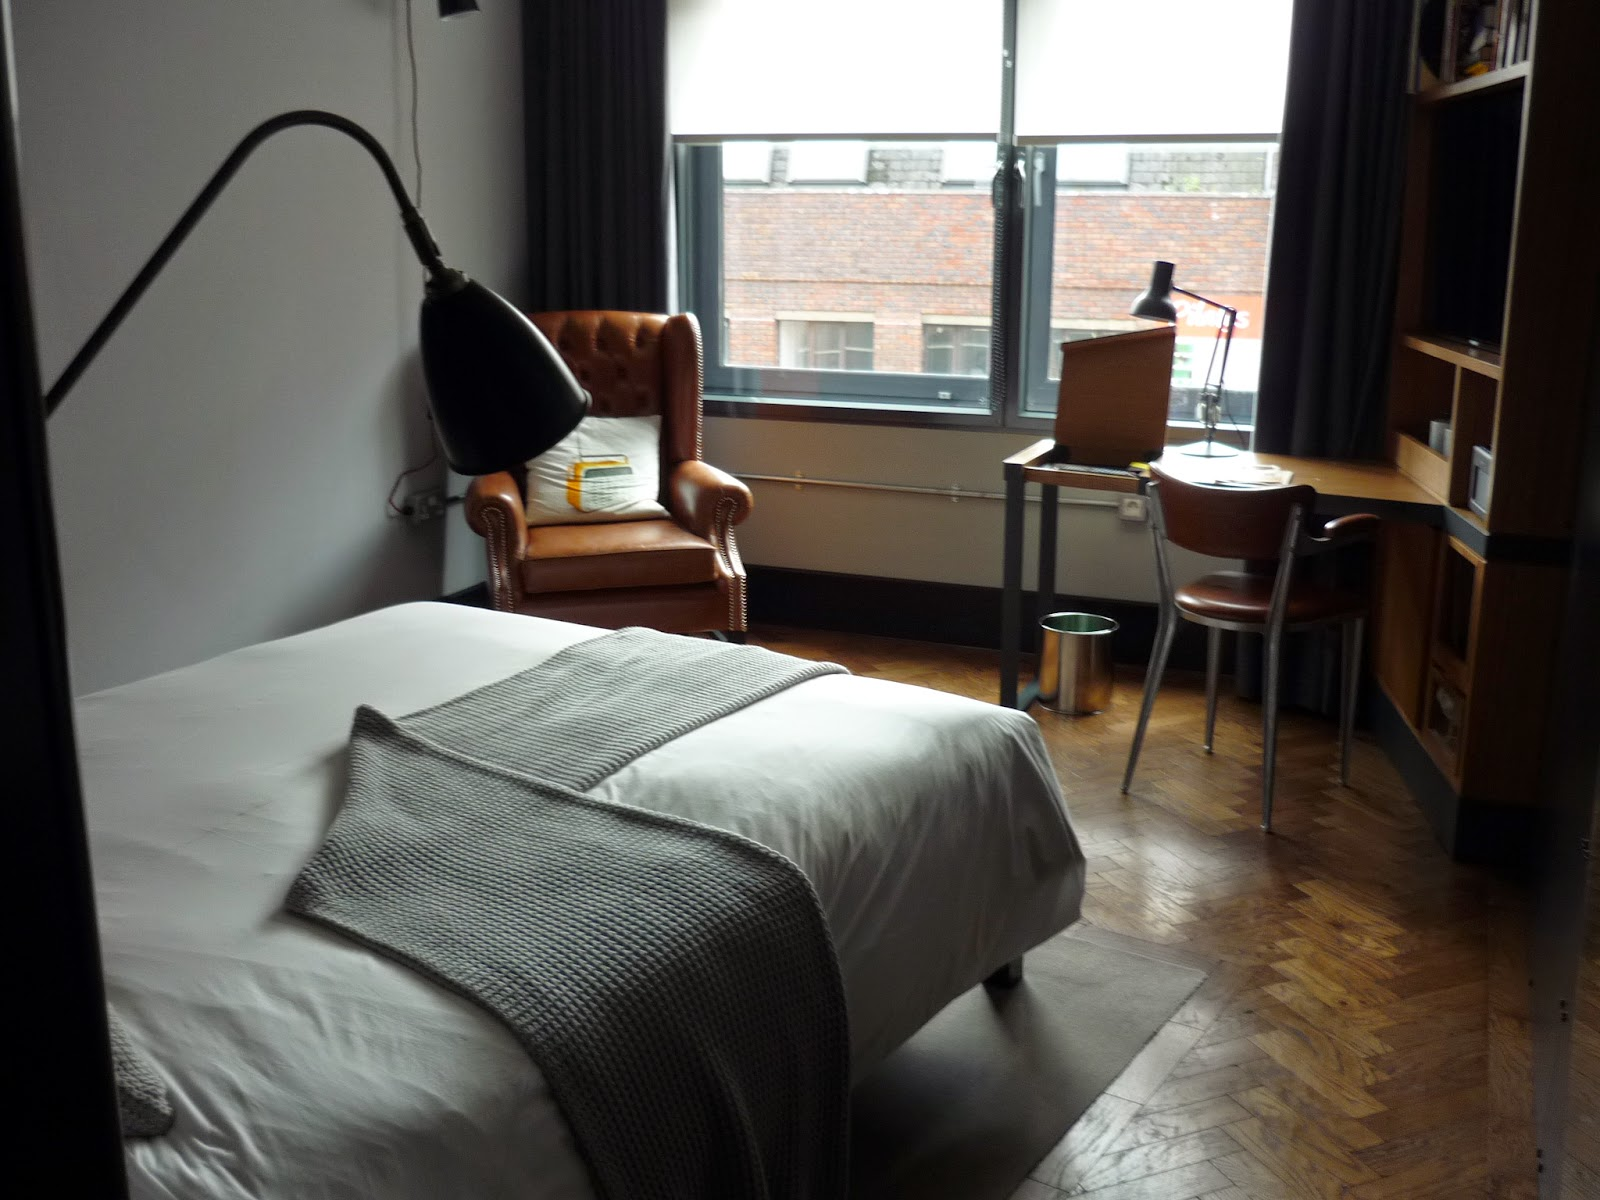 The Hoxton Hotel Shoreditch Review